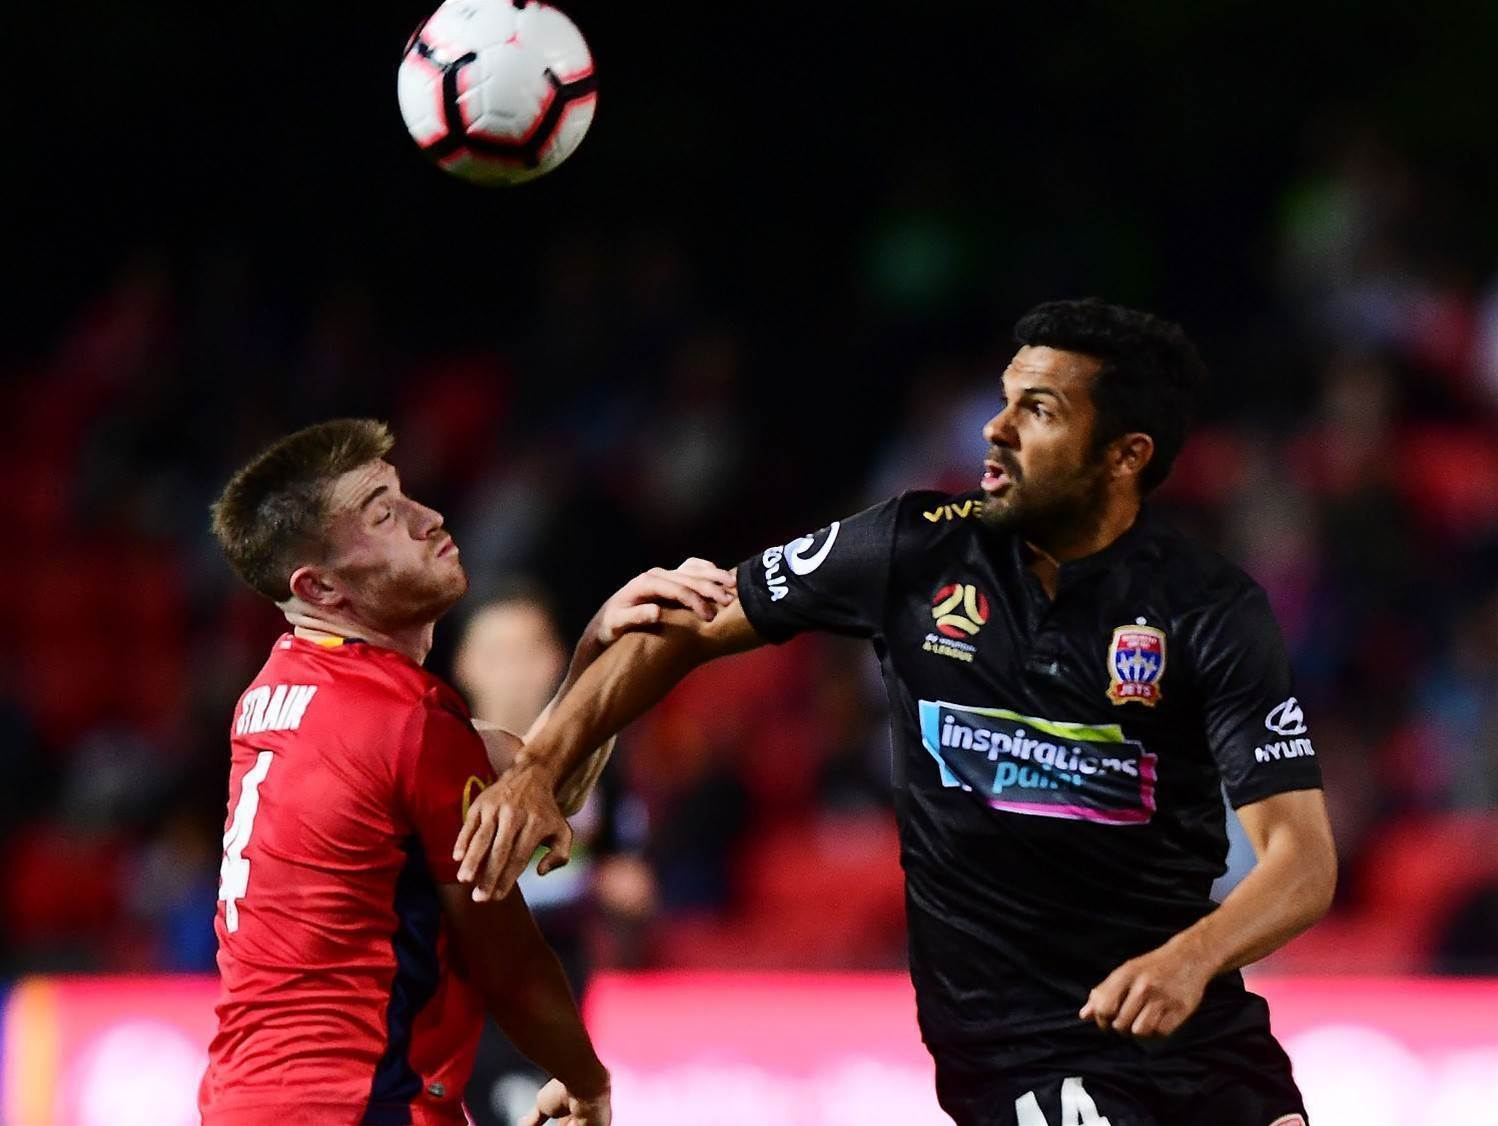 Adelaide United v Newcastle Jets player ratings